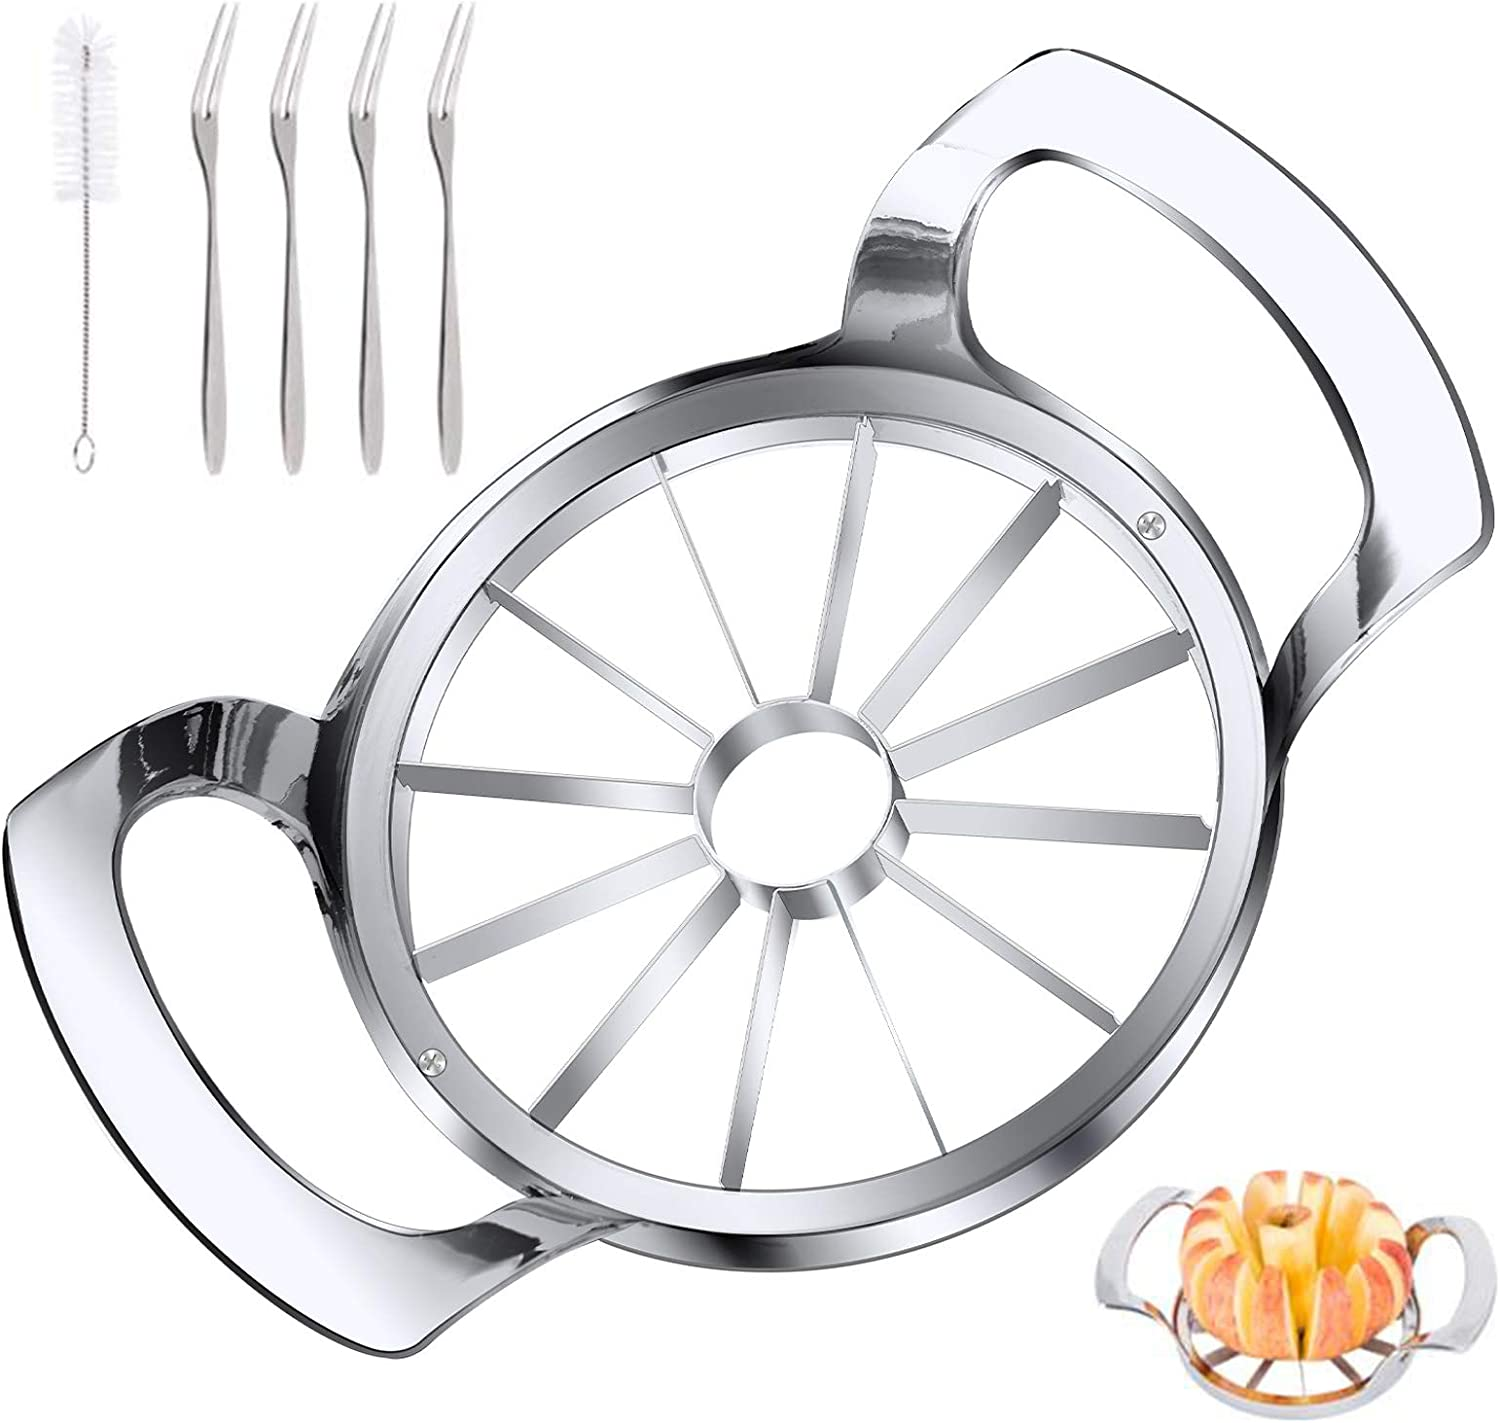 LIIGEMI Apple Slicer Upgraded Version 12-Blade Extra Large Apple Corer, Stainless Steel Ultra-Sharp Apple Cutter, Pitter, Divider Up to 4 Inches Apples / Four Fruit Forks set